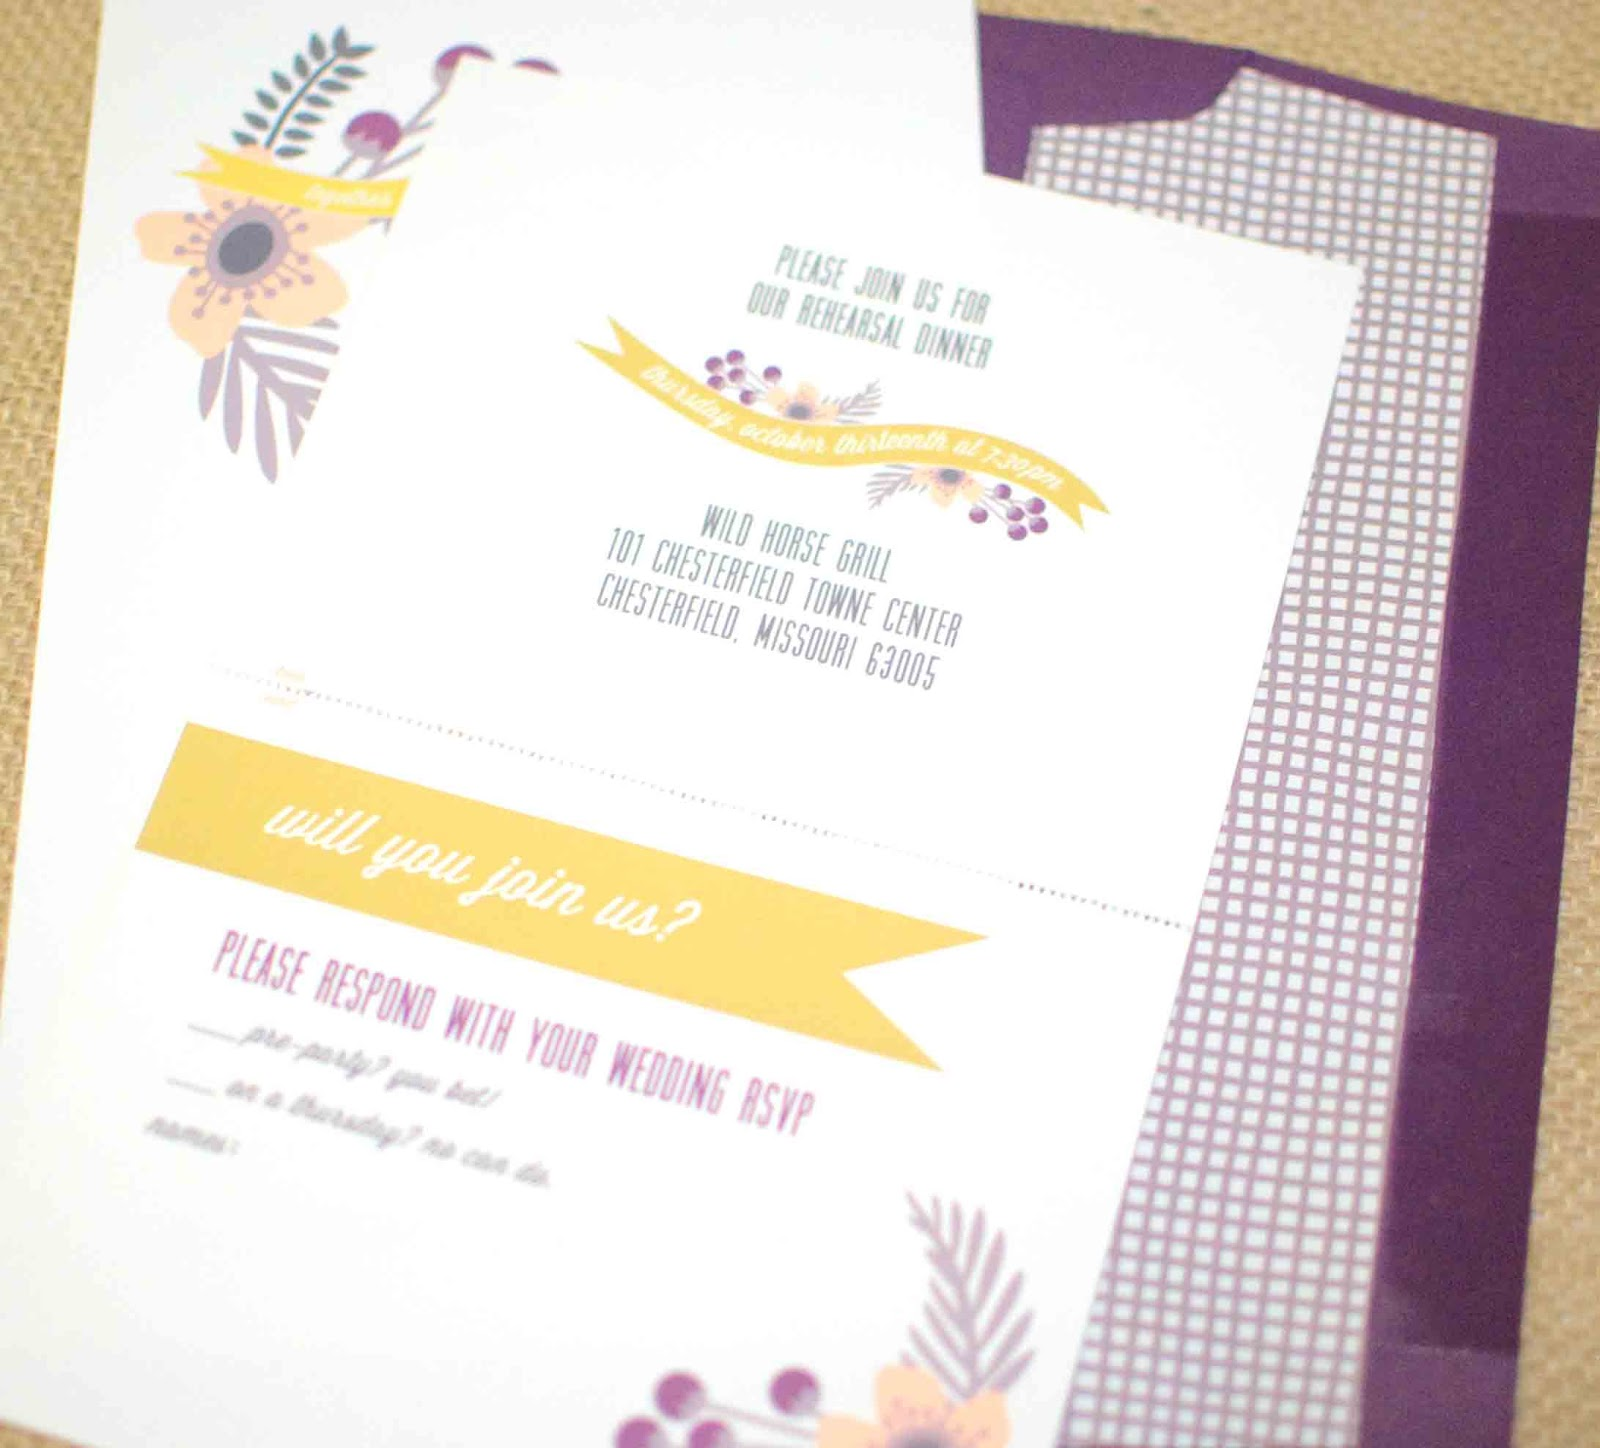 ... Invitation Wording. .Wedding Response Card Wording For Limited Guests